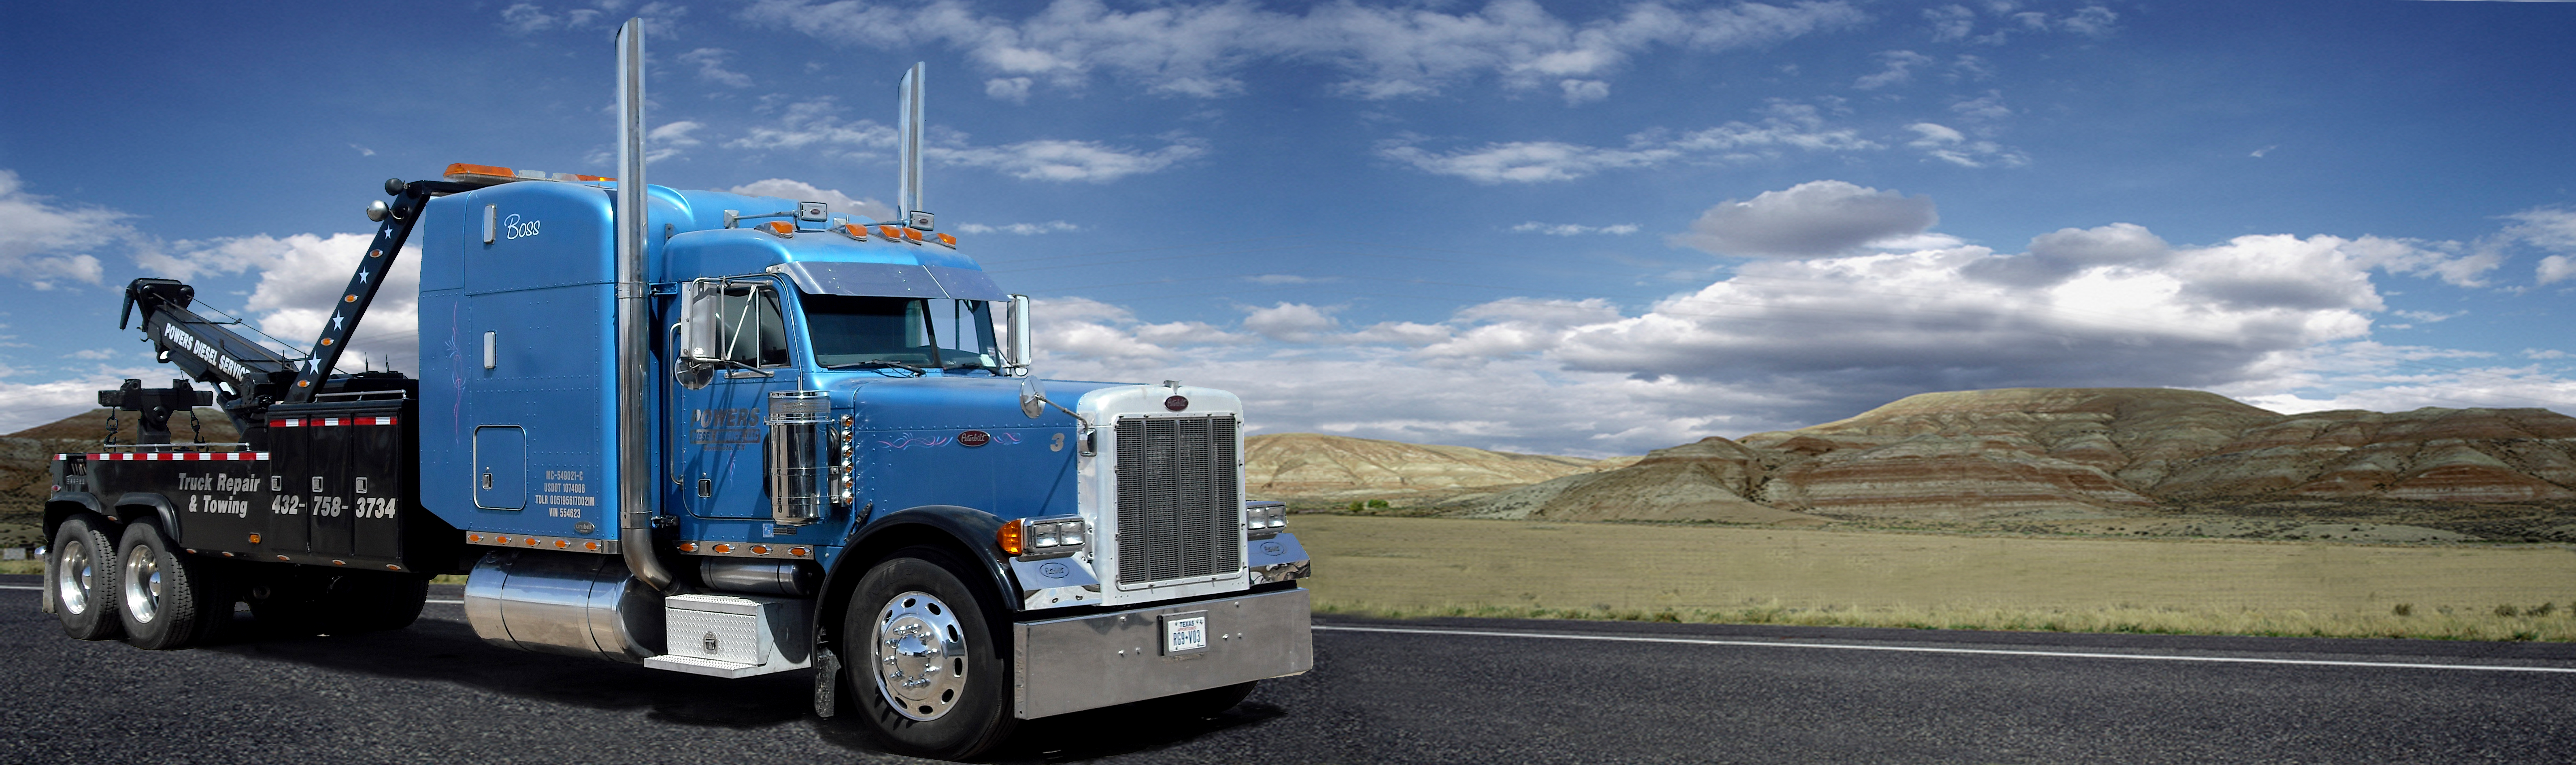 POWERS TRUCK AND TRAILER SALES, LLC